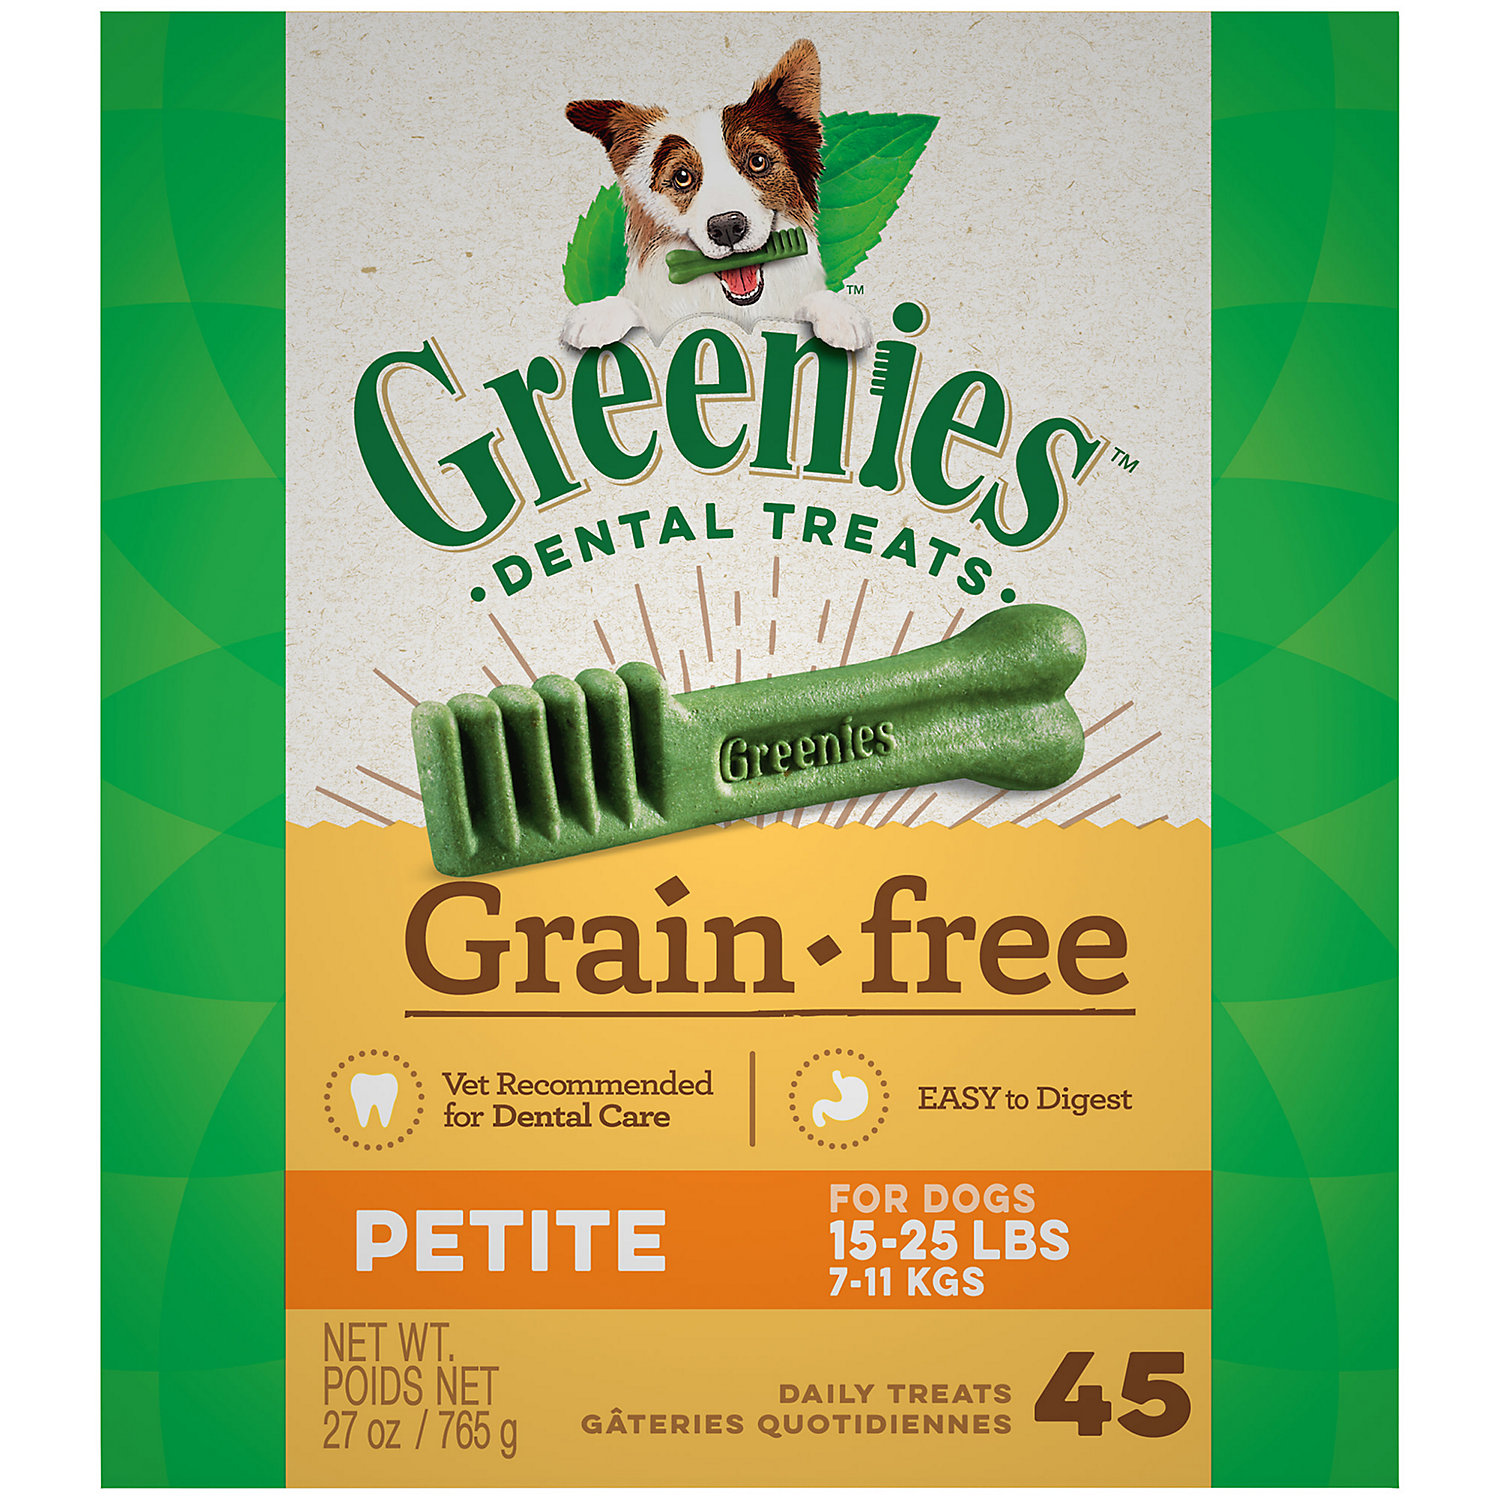 Greenies Grain Free Petite Dental Dog Treats 27 Oz.